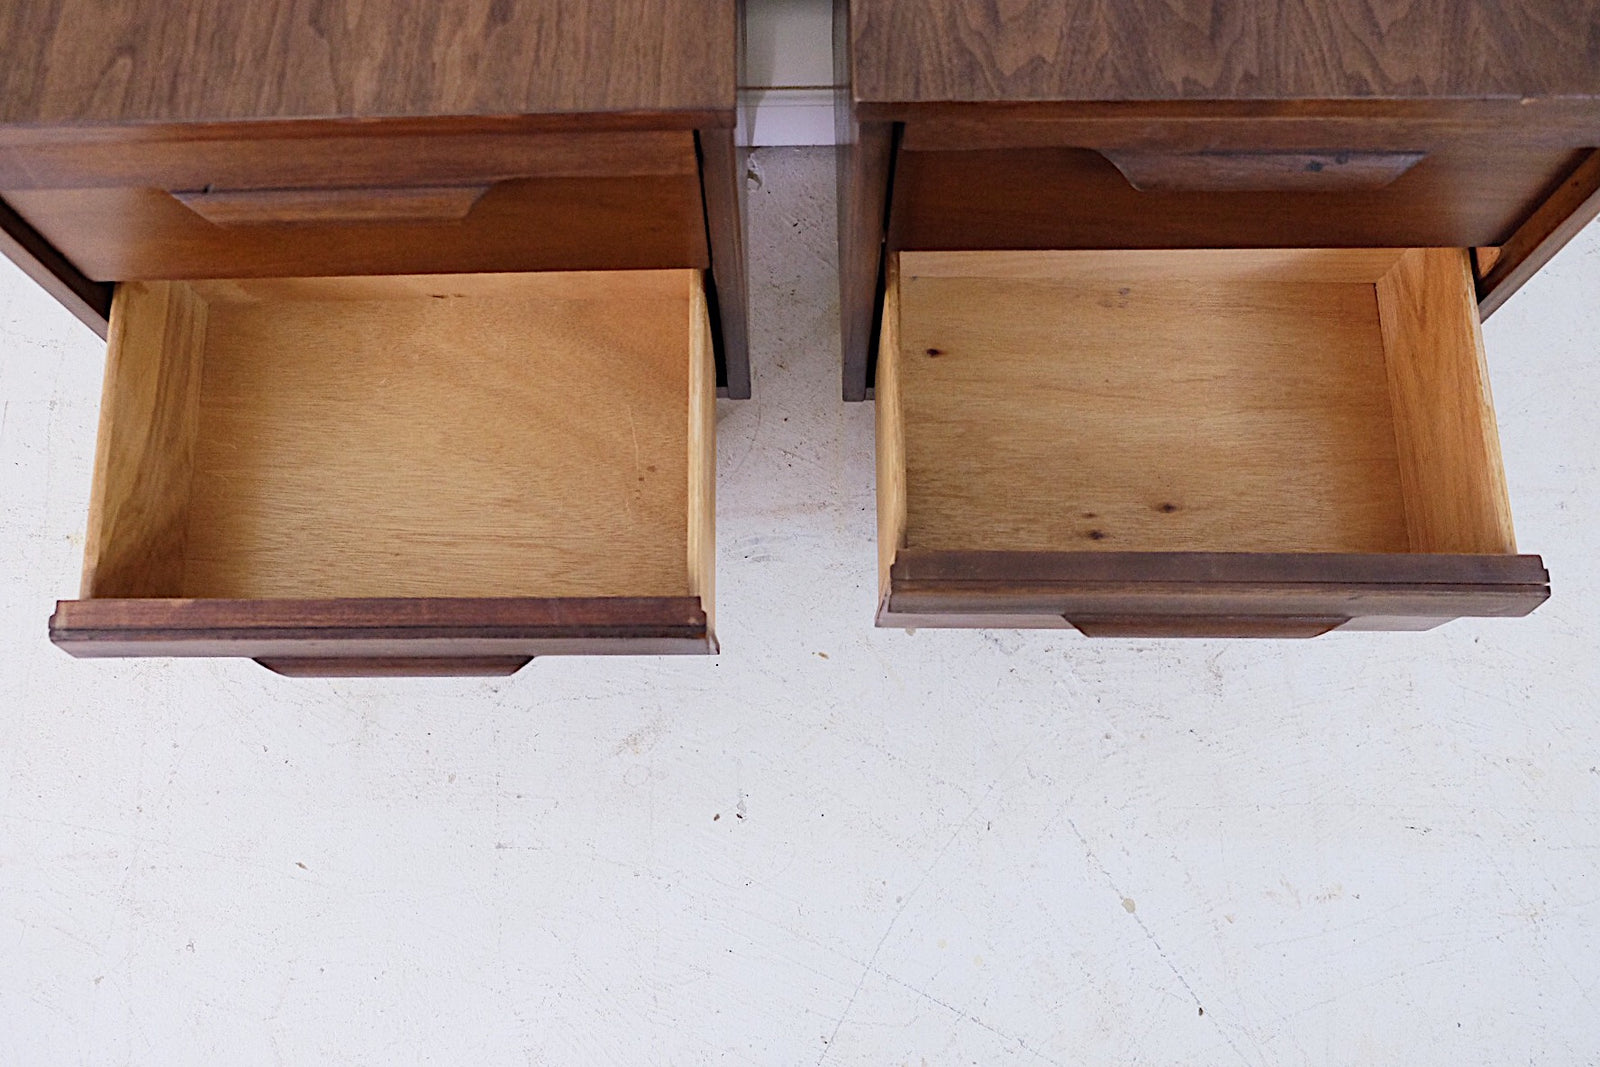 Basset Mid Century Modern Set of Nighstands New Walnut Veneer Tops Tapered Legs